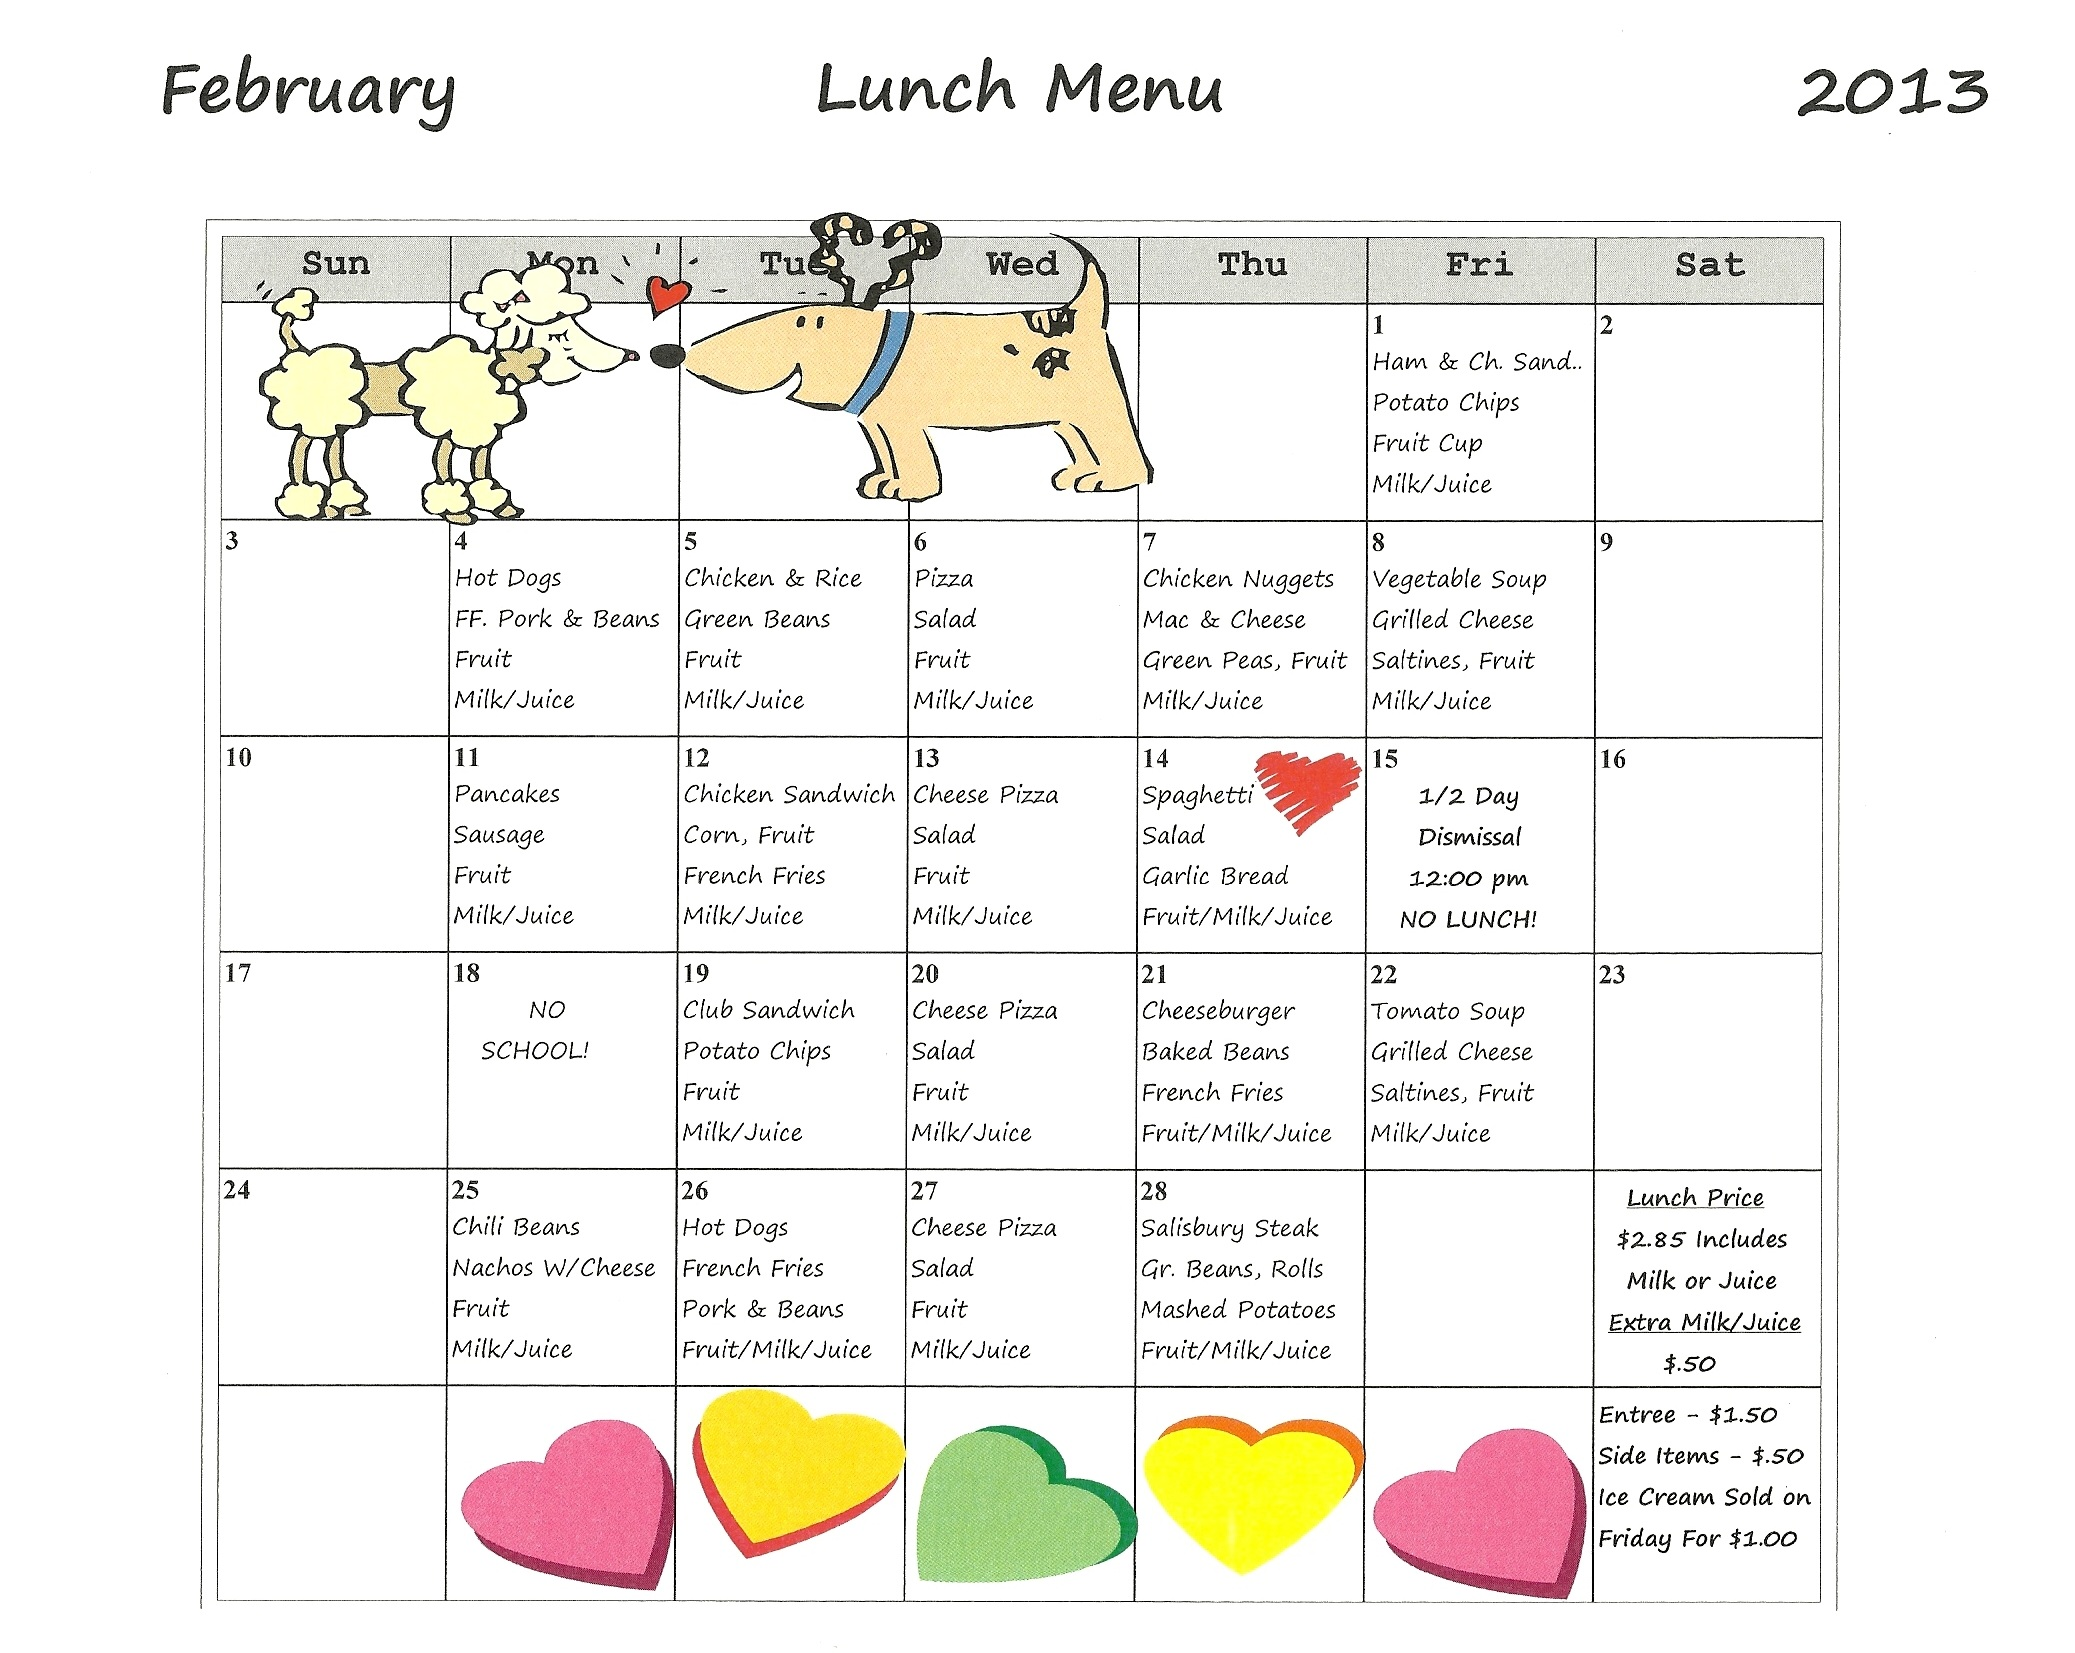 Feb_Lunch_Menu000113